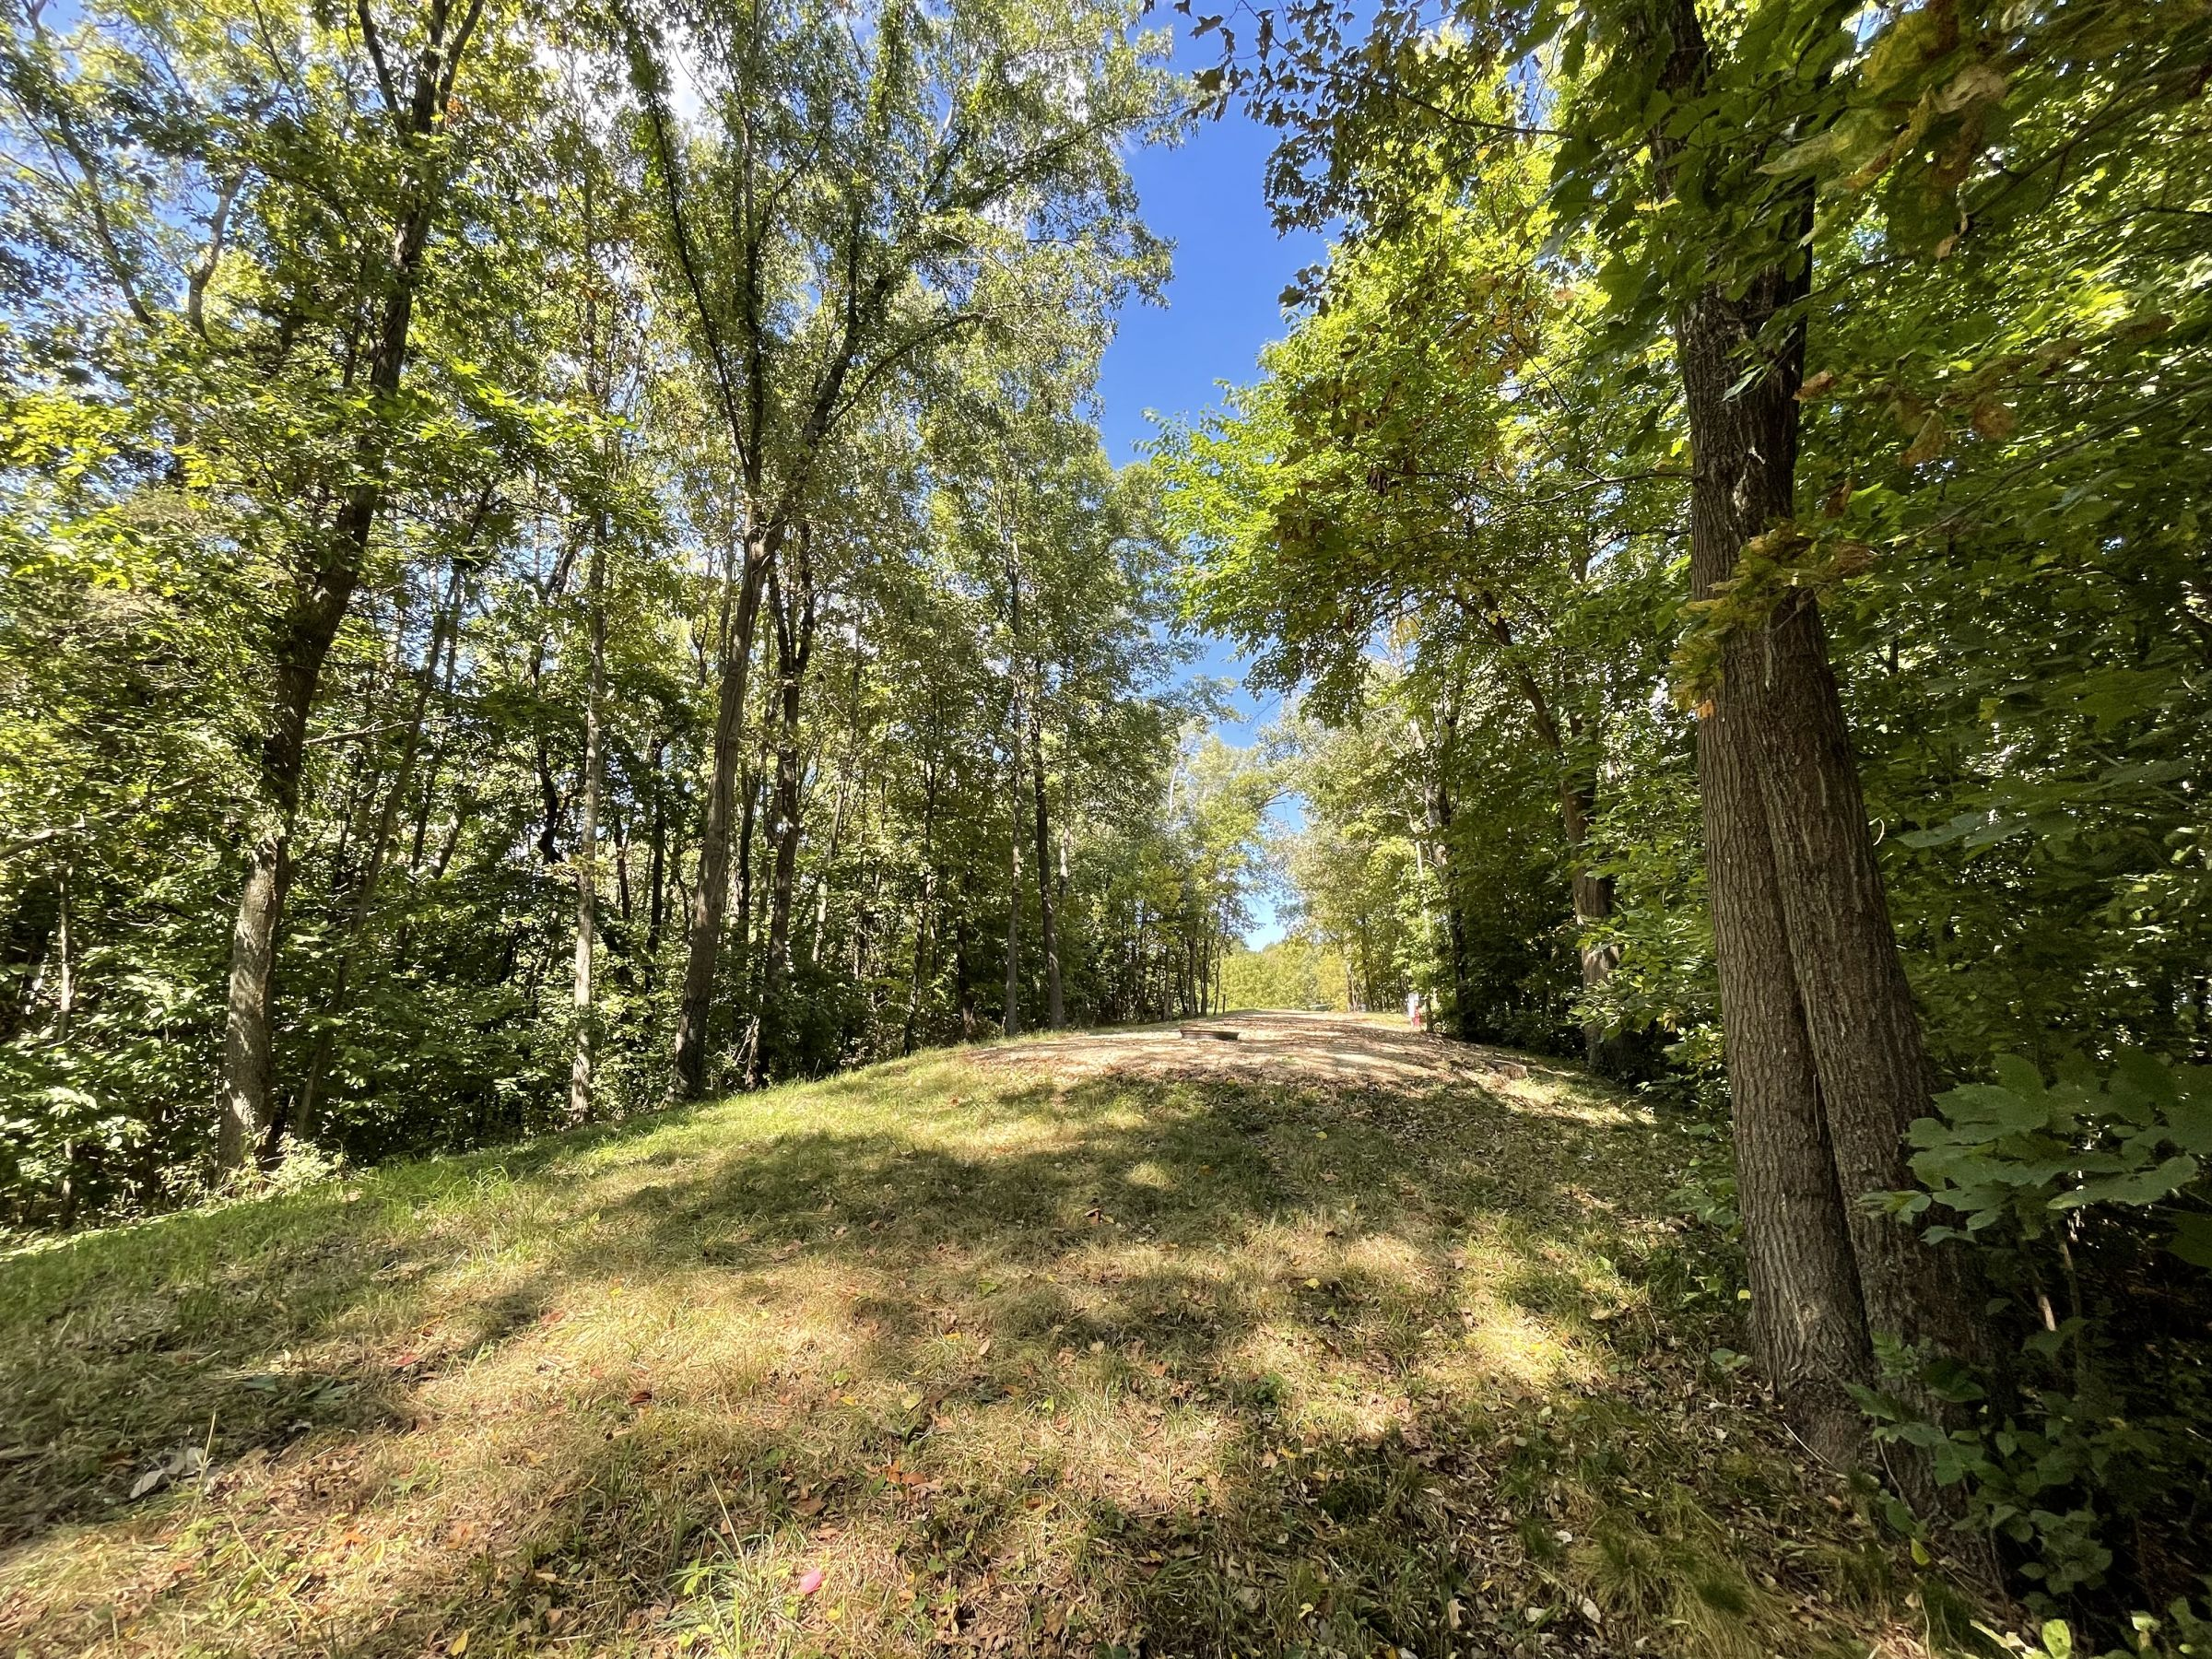 land-grant-county-wisconsin-4-acres-listing-number-15772-4-2021-09-23-020215.JPG